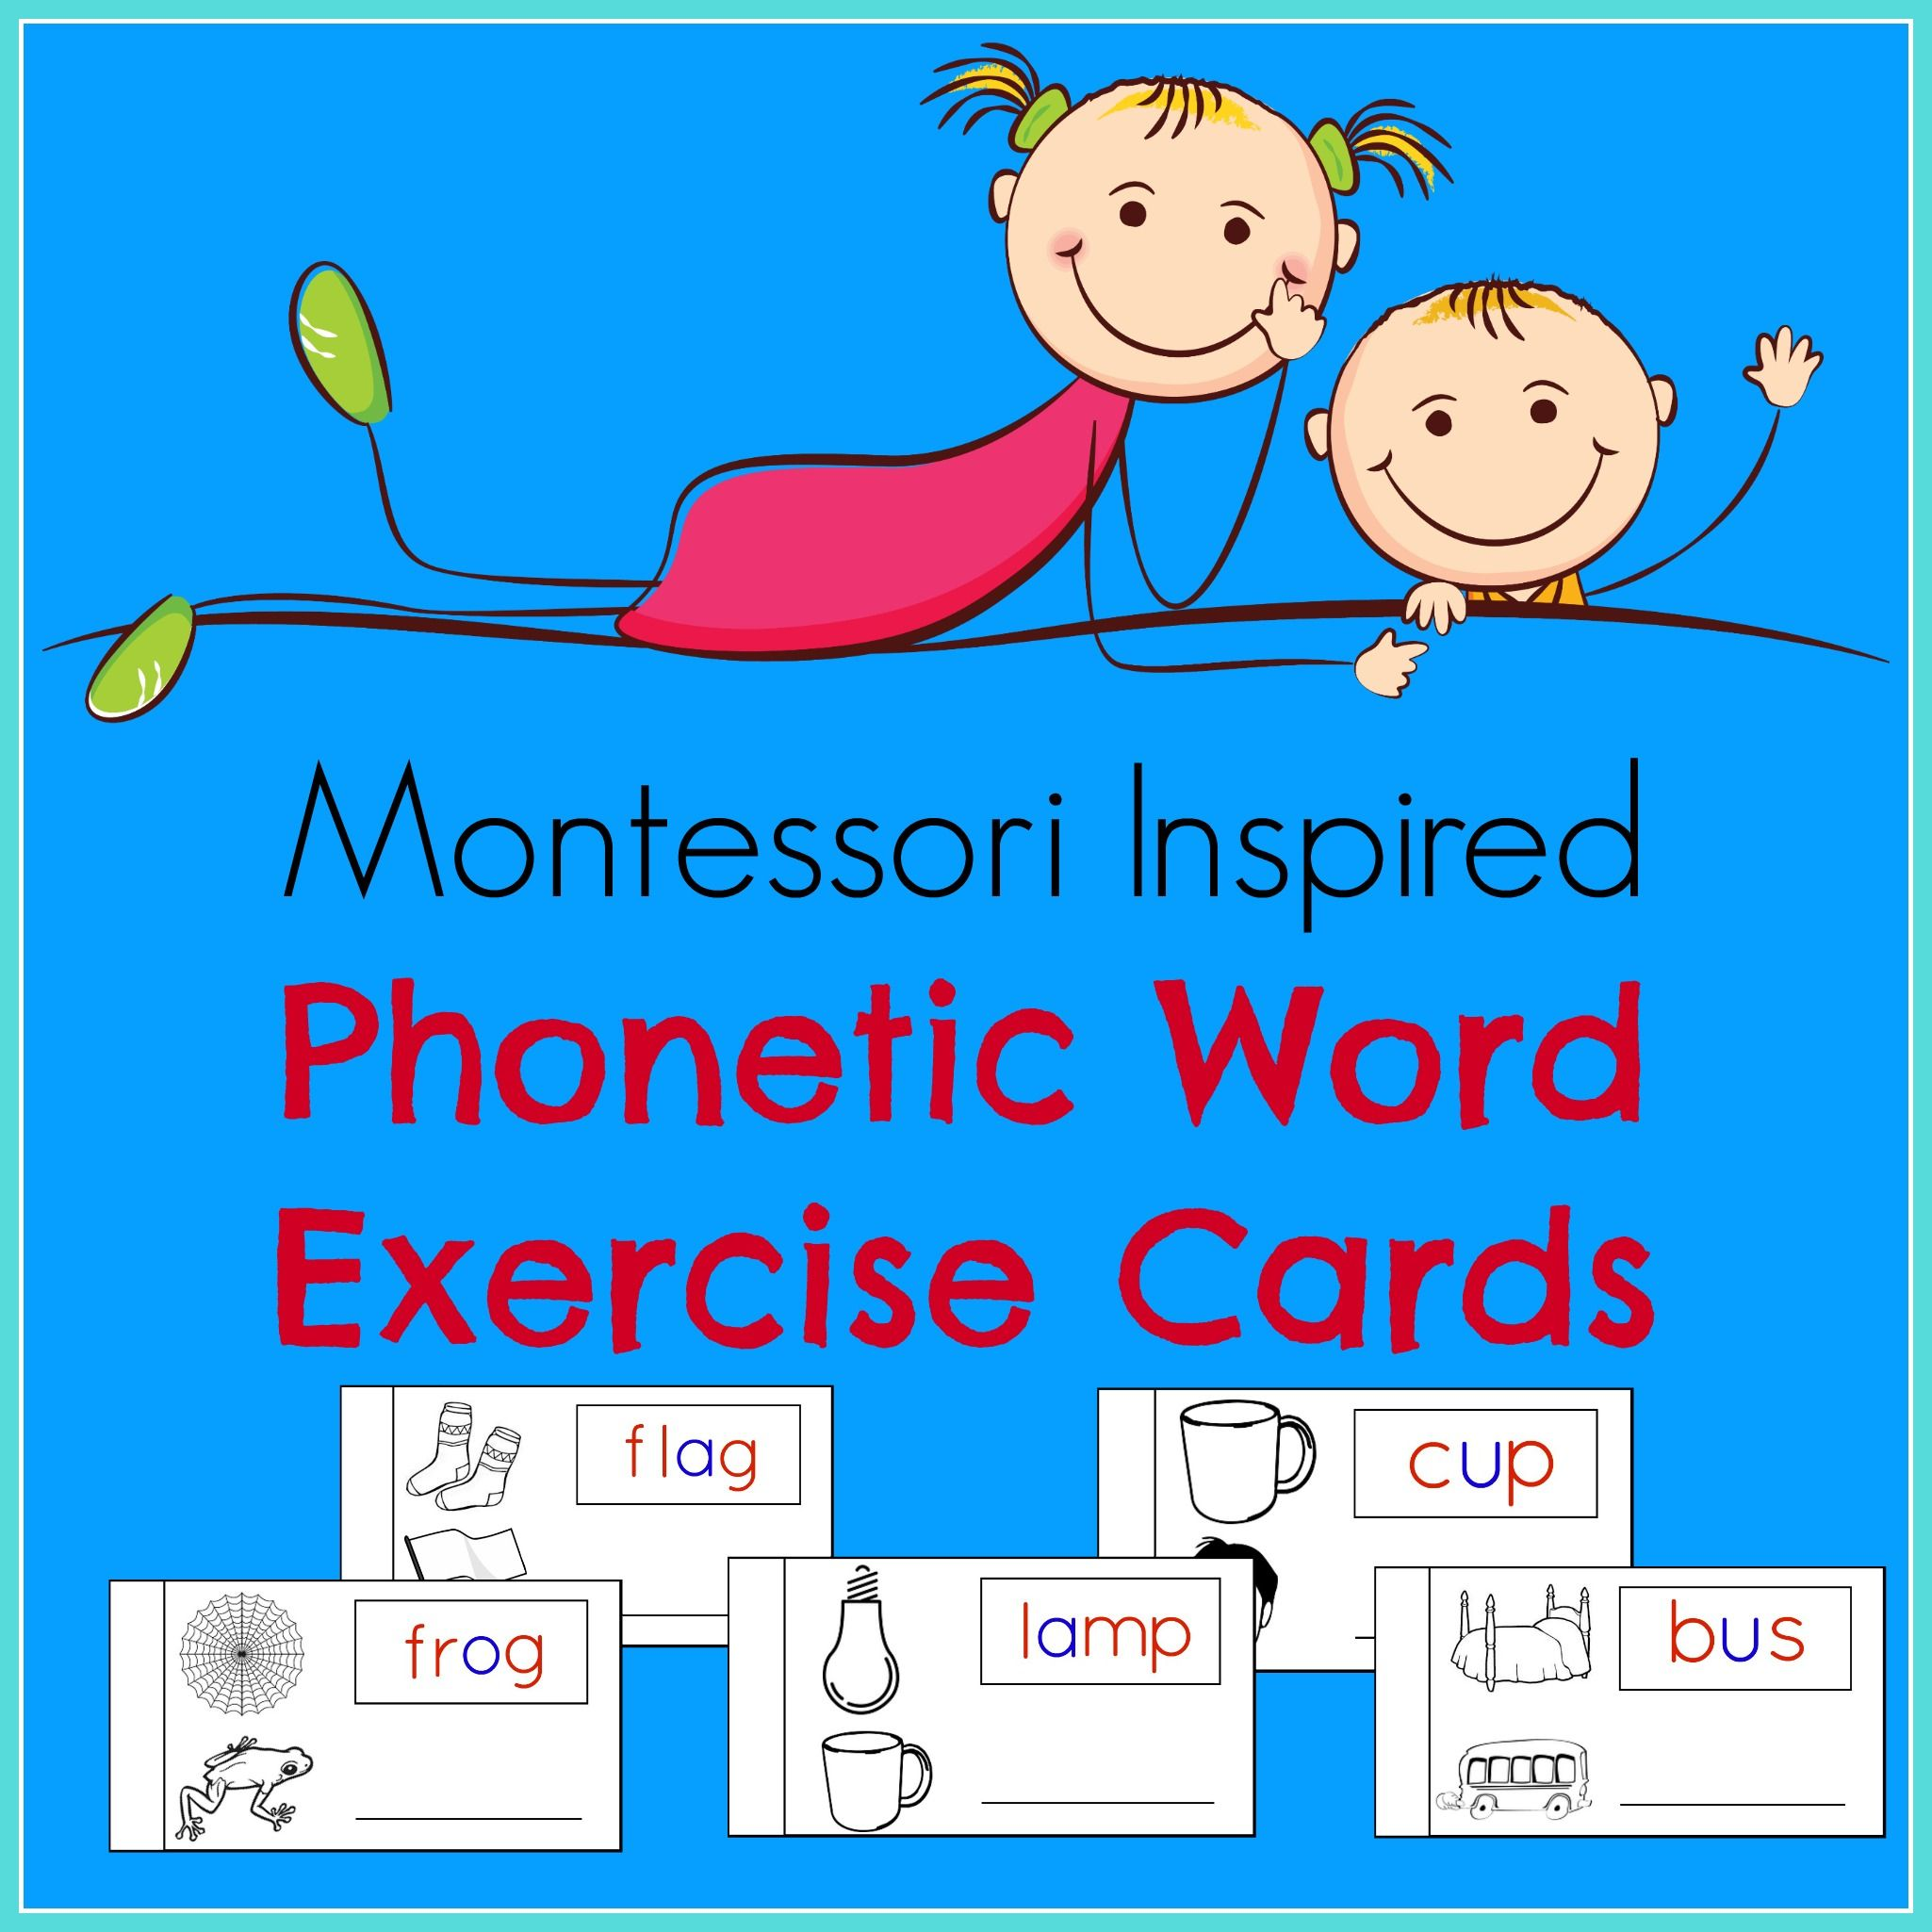 WORD EXERCISE CARDS CONTAIN 54 WORD